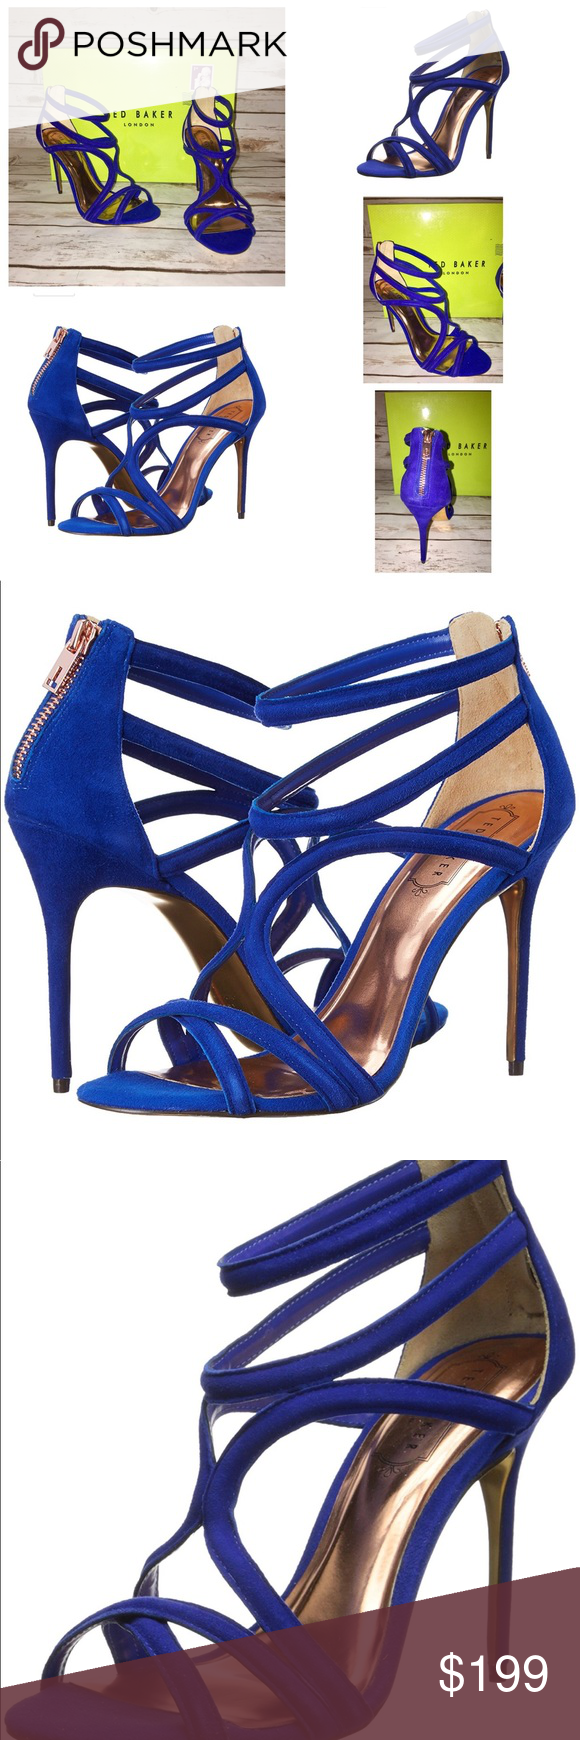 1a81204ee1b Ted Baker of London 8.5M Ninof Gladiator Sandal NWT Ted Baker Royal Blue  Suede Gladiator